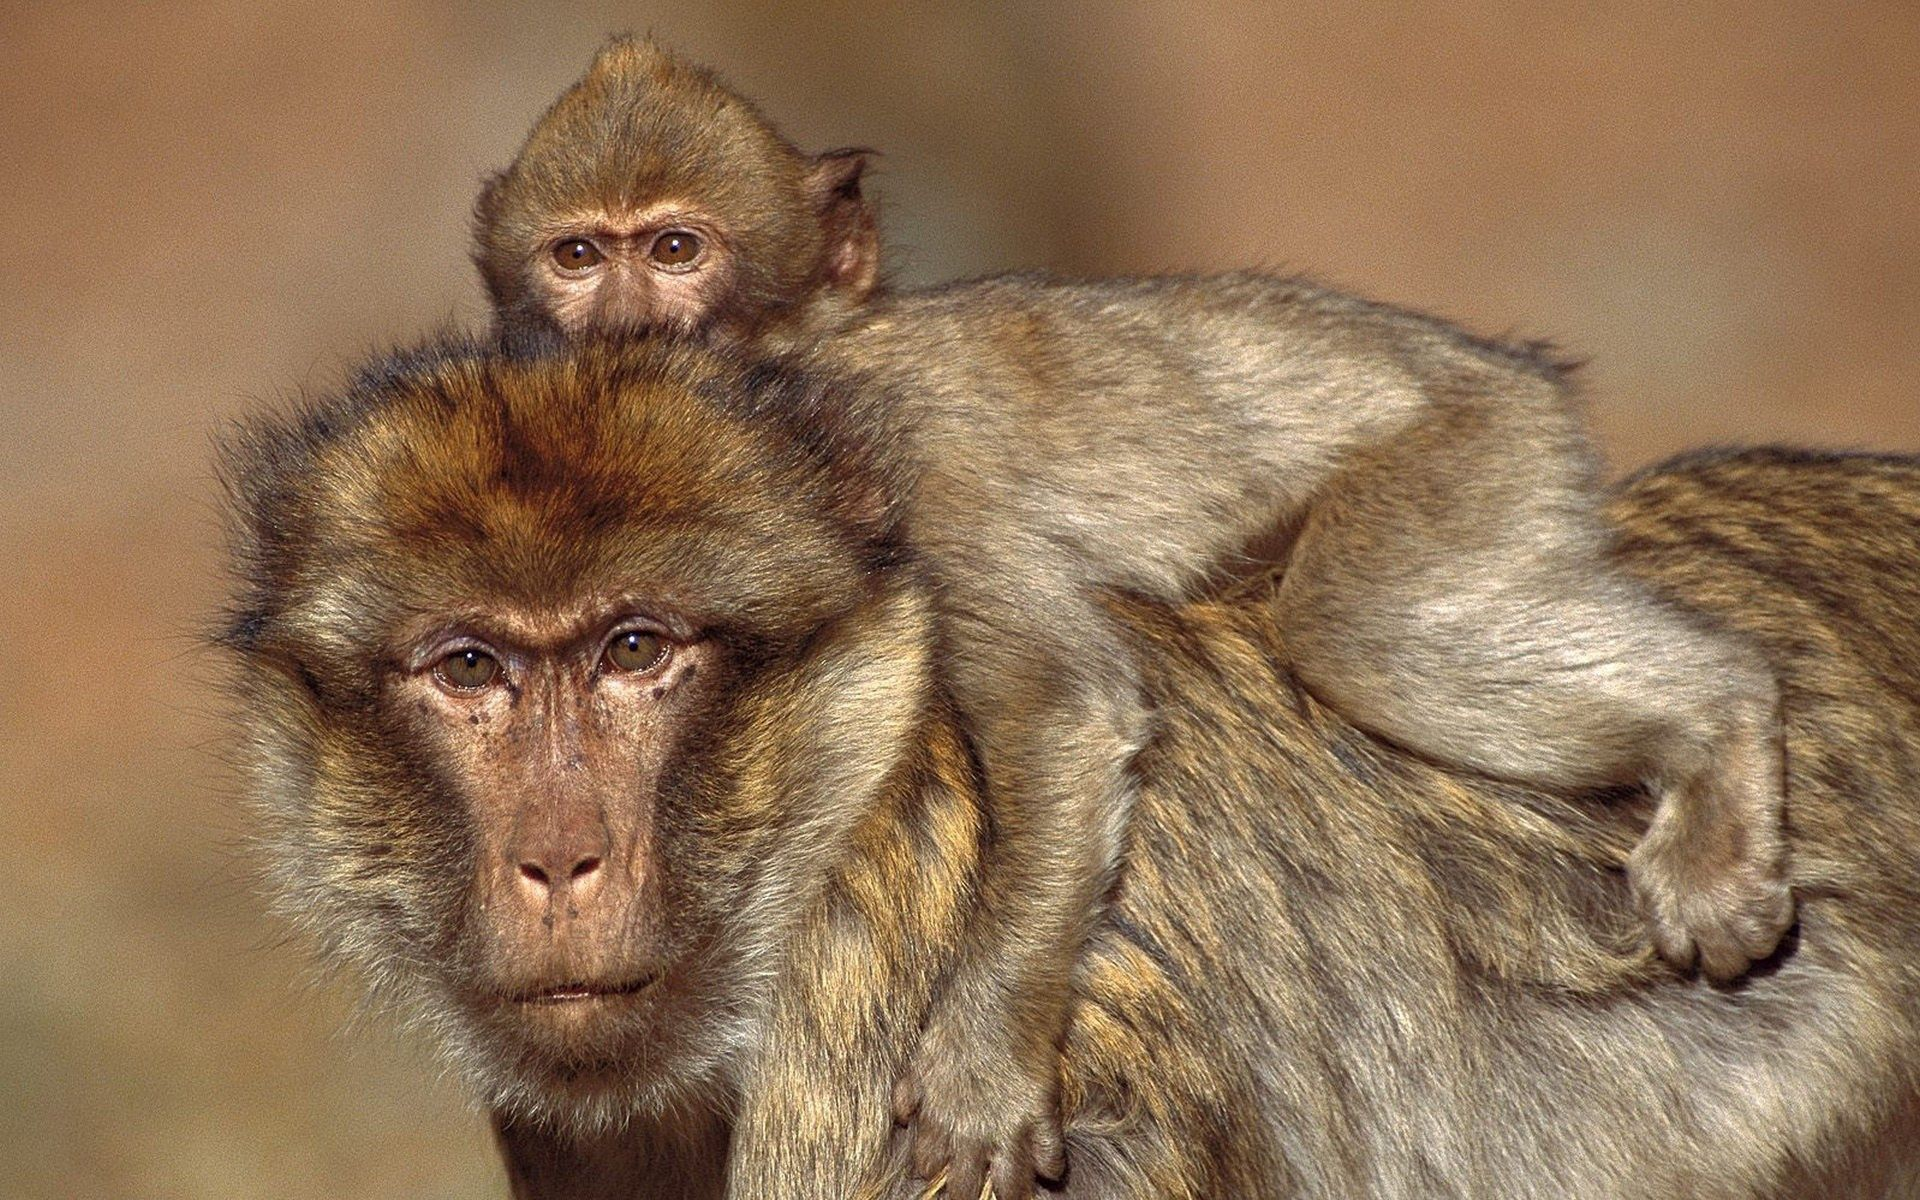 130570 Screensavers and Wallpapers Monkeys for phone. Download Animals, Monkeys, Young, Family, Kid, Tot, Care, Joey pictures for free